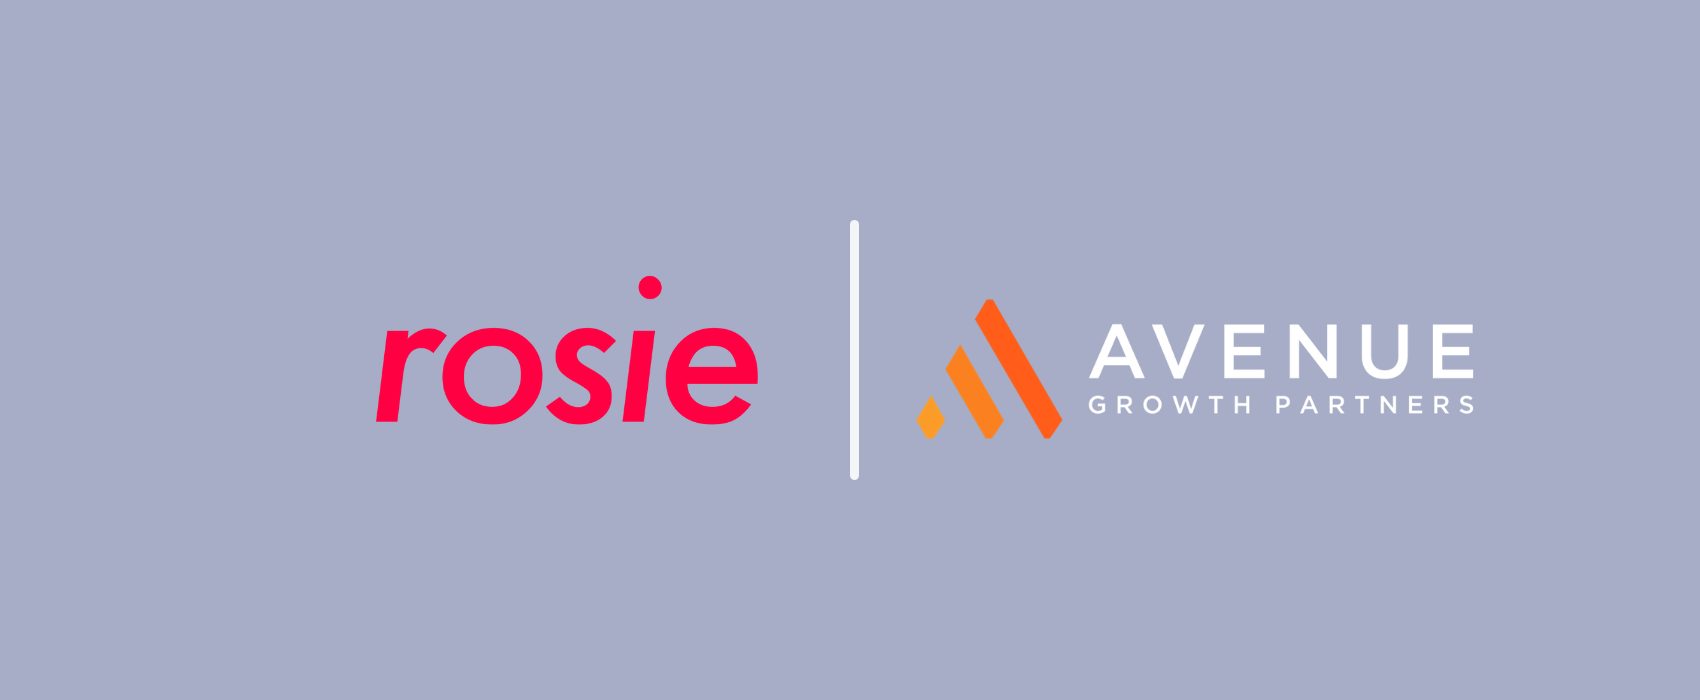 News release: Rosie Closes $10 Million Series A Financing from Avenue Growth Partners